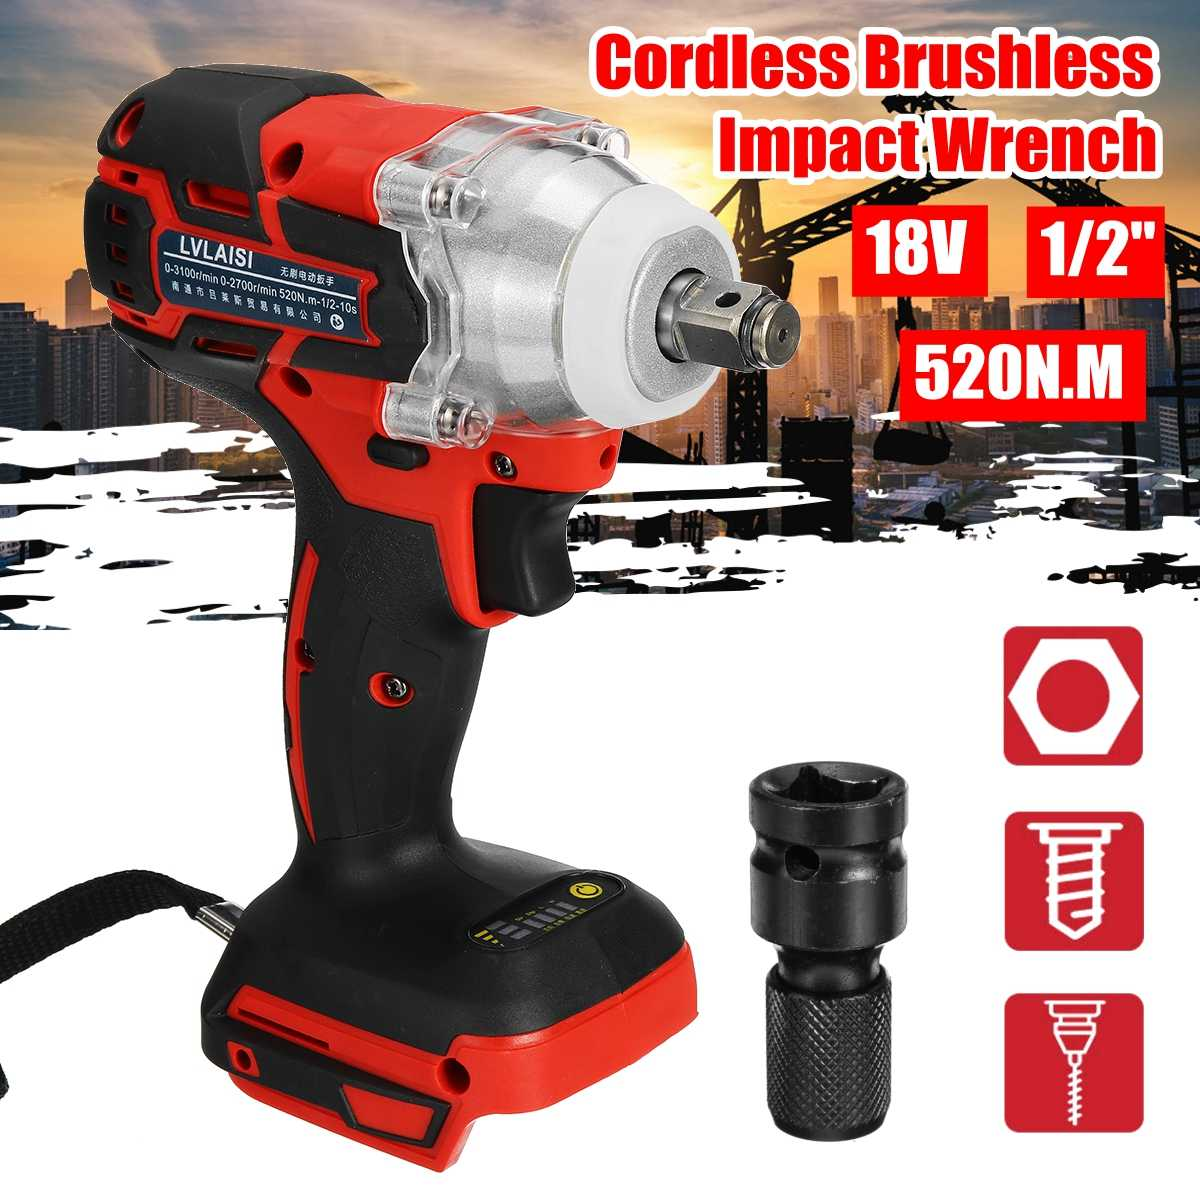 18V 520N.m. Li-Ion Cordless Impact Wrench Driver 1/2 Electric Wrench Replacement For Makita Battery DTW285Z